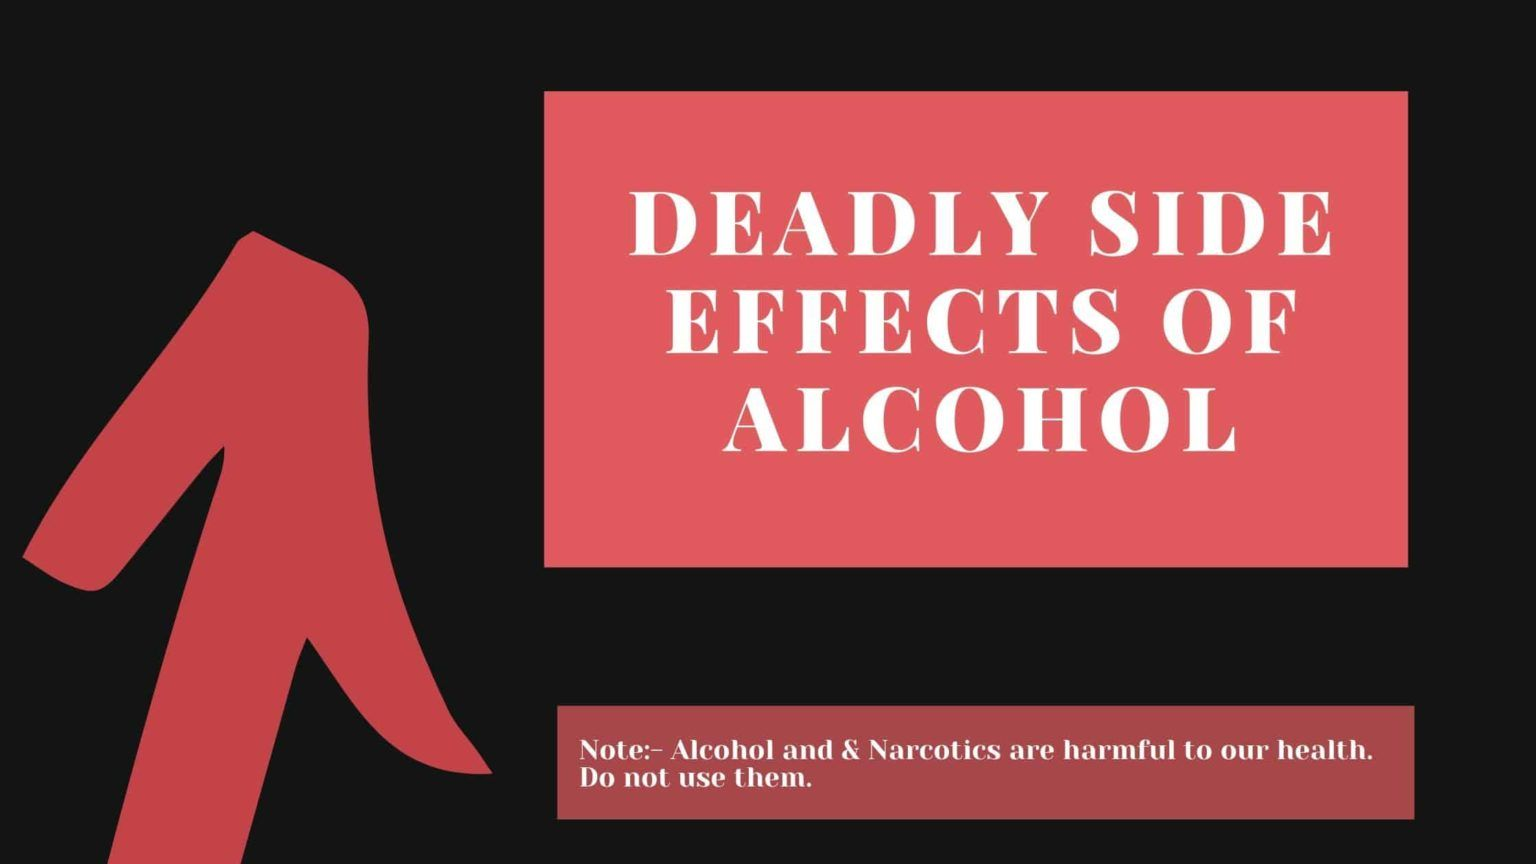 10 Deadly Side Effects Of Alcohol In 2020 Alcohol Side Effects Effects Of Alcohol Side Effects